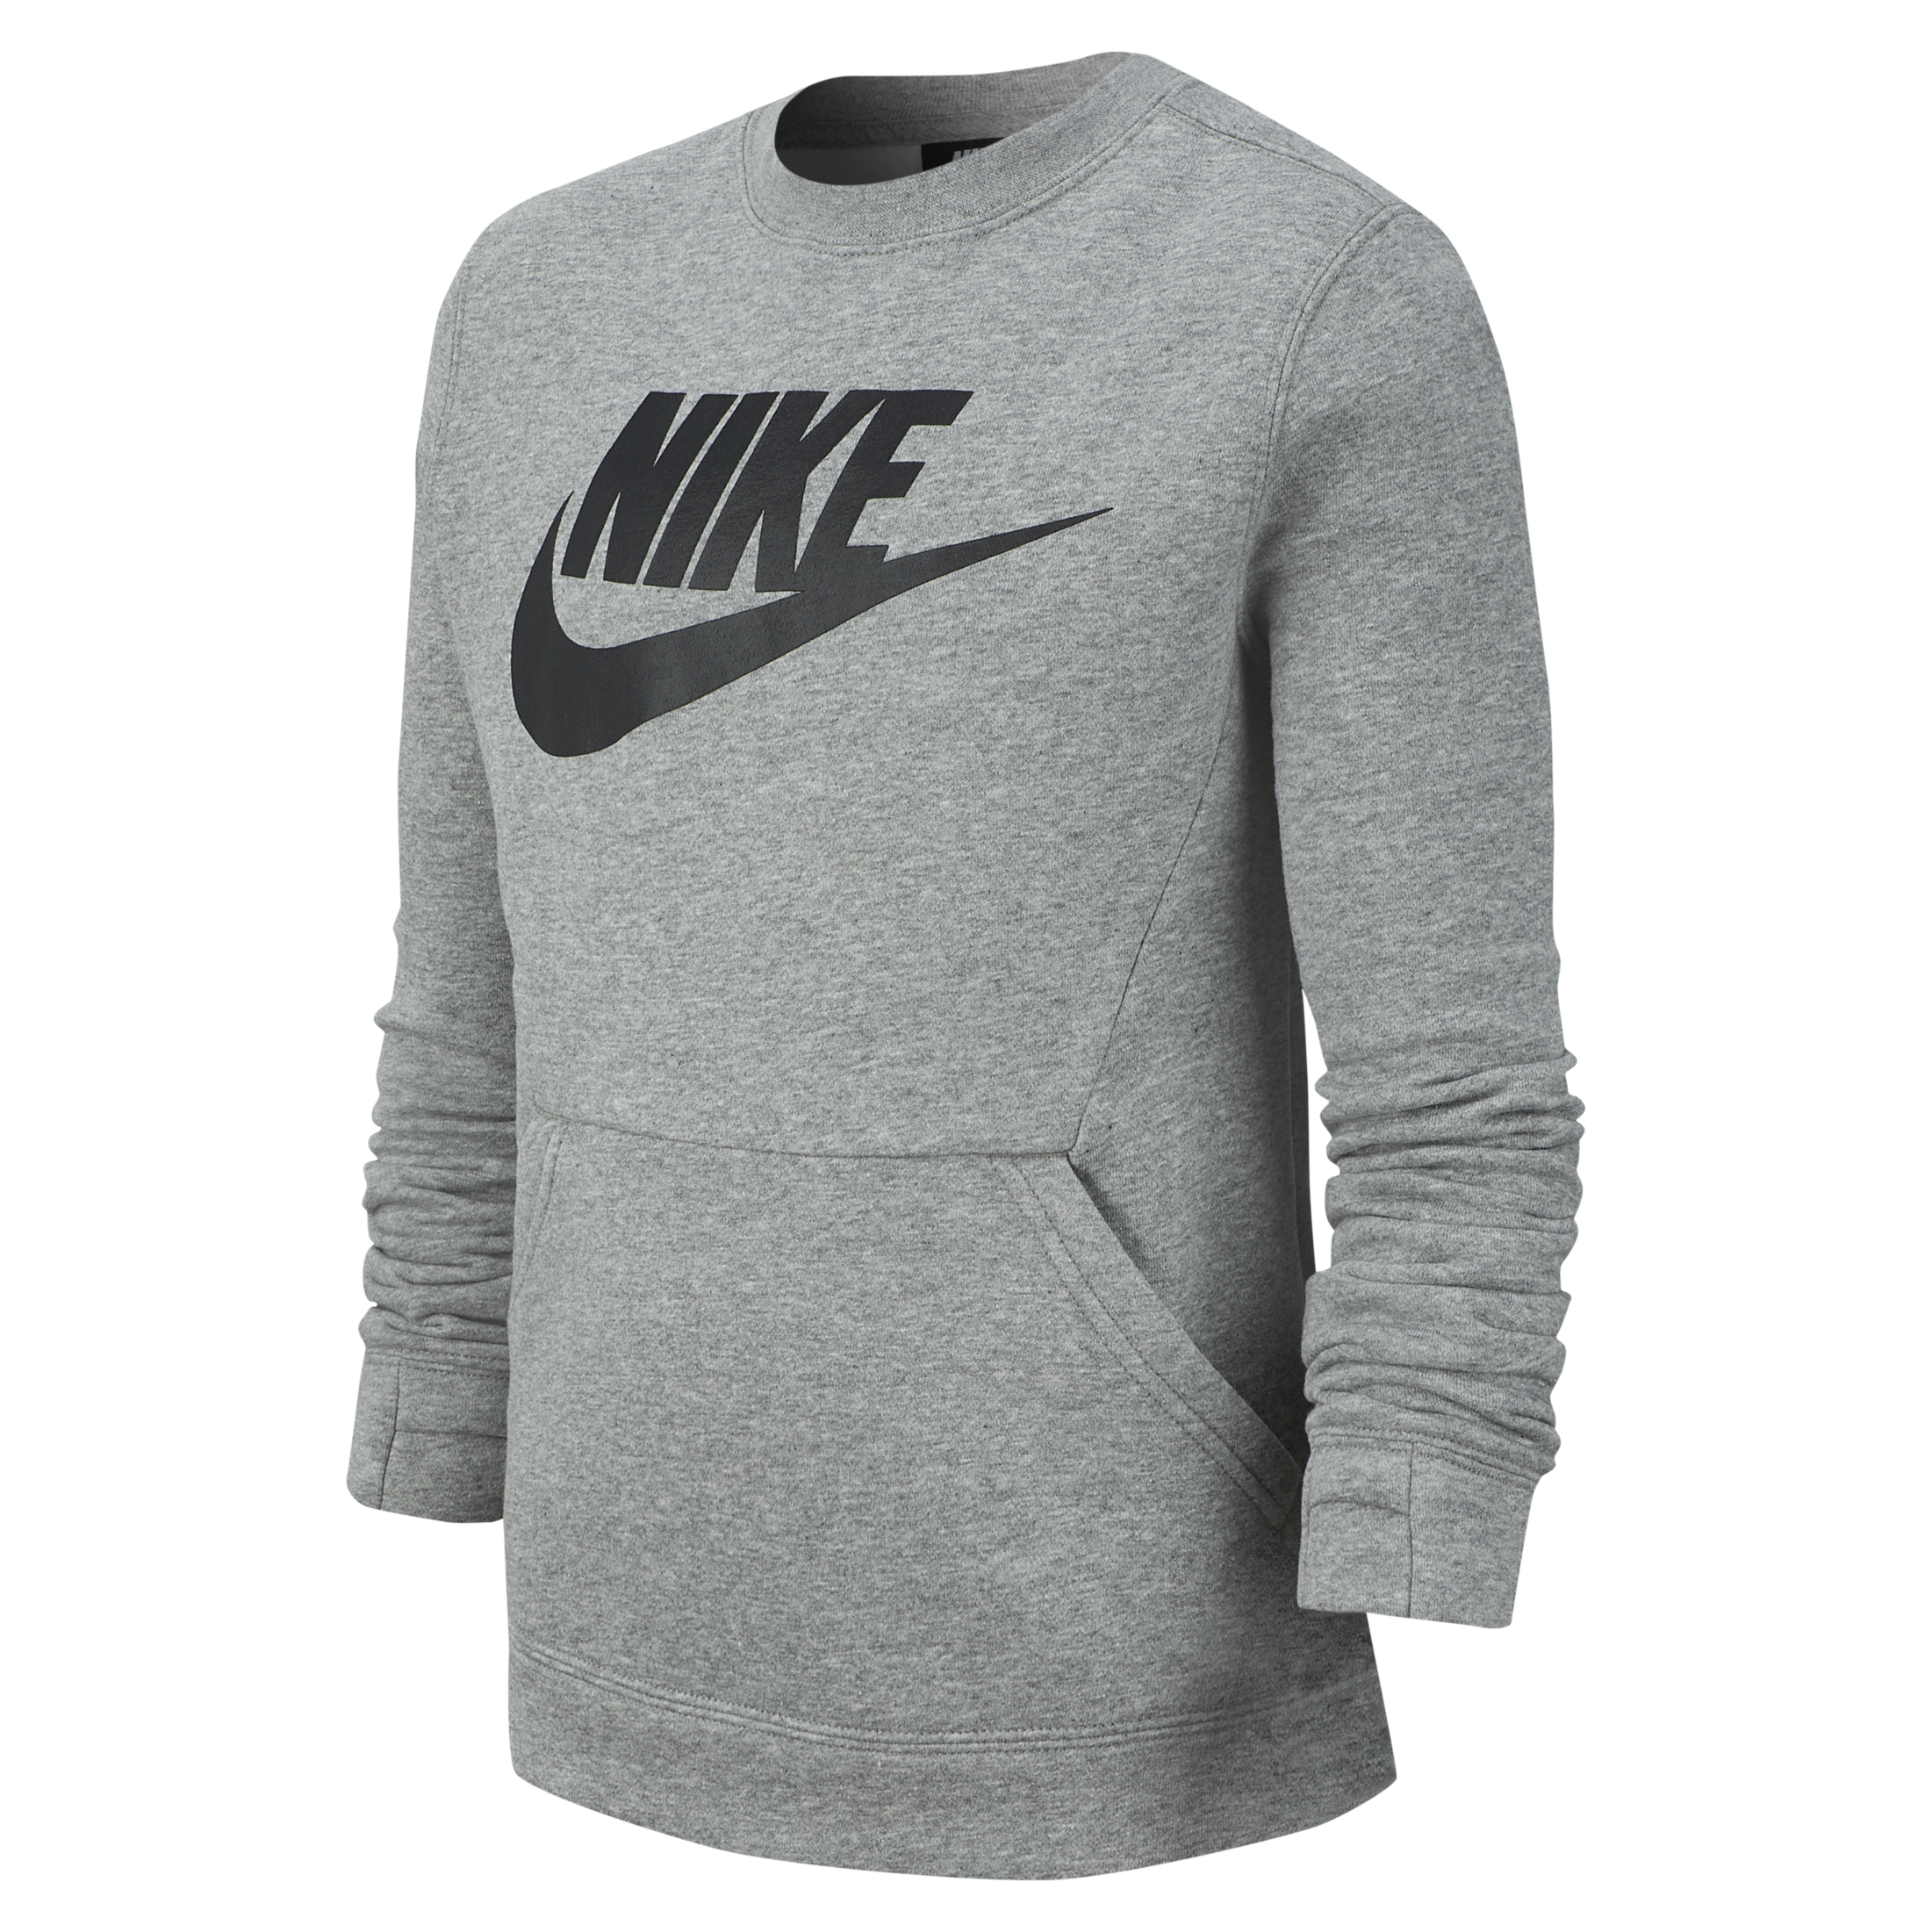 dec542f51155 NIKE SPORTSWEAR CREW CLUB LS JUNIOR - Poobie Naidoos